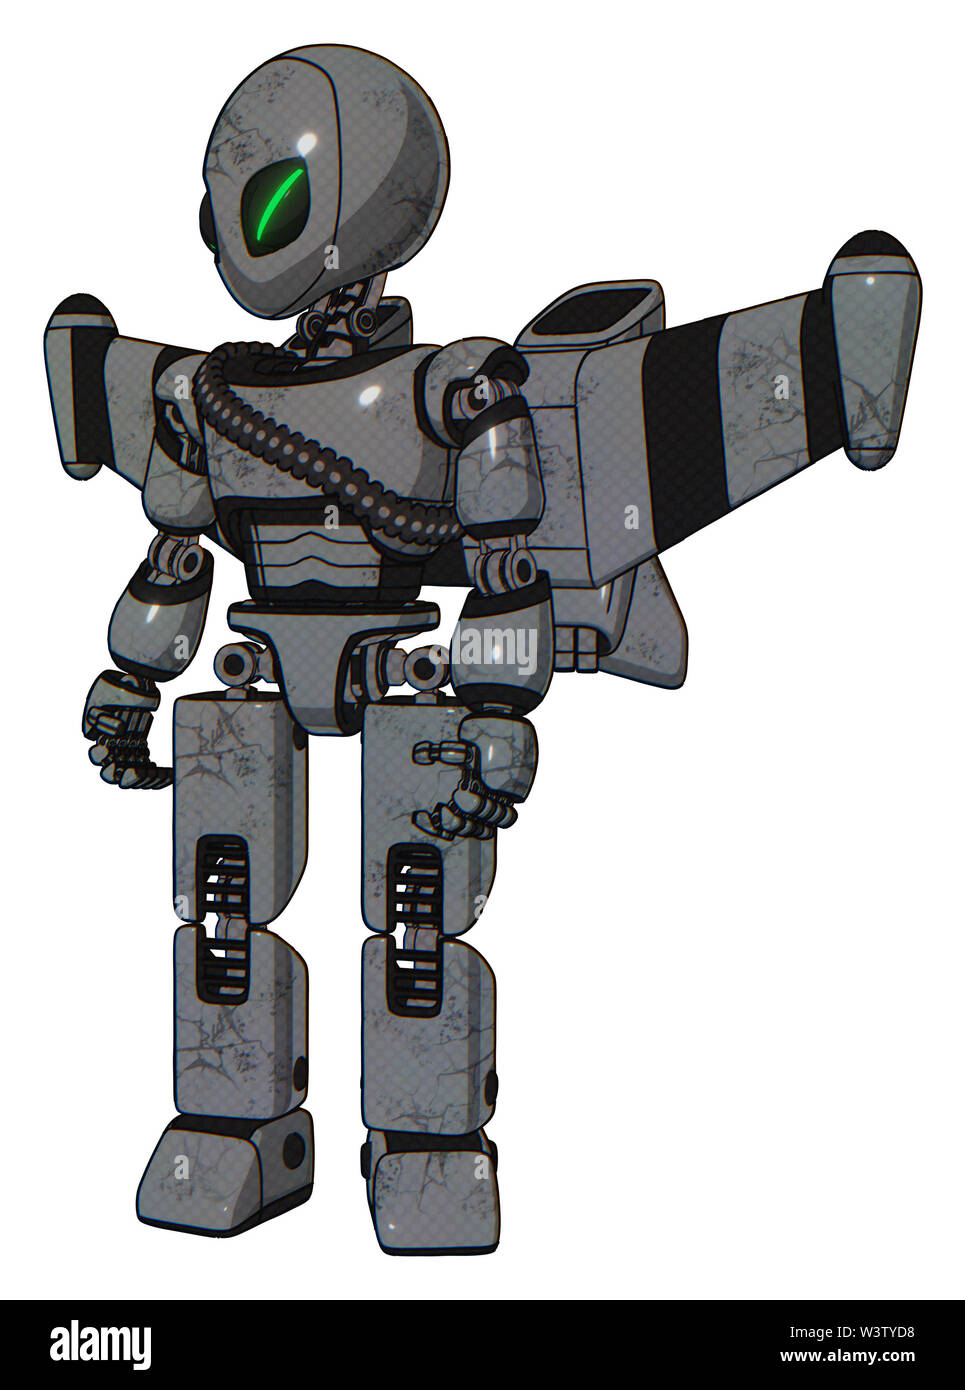 Droid containing elements: grey alien style head, green demon eyes, light chest exoshielding, rubber chain sash, stellar jet wing rocket pack, prototy - Stock Image